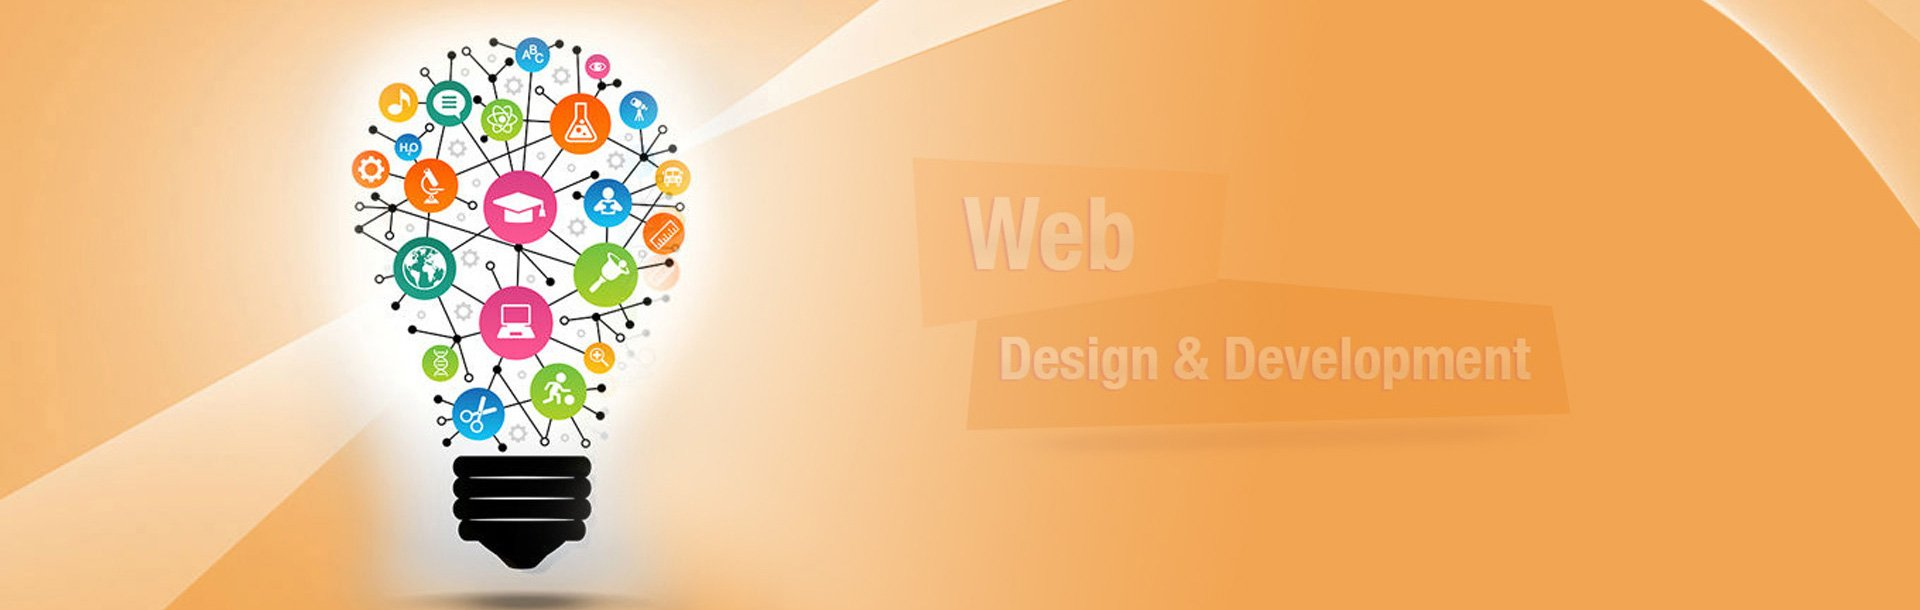 Web Design-Development Sevices